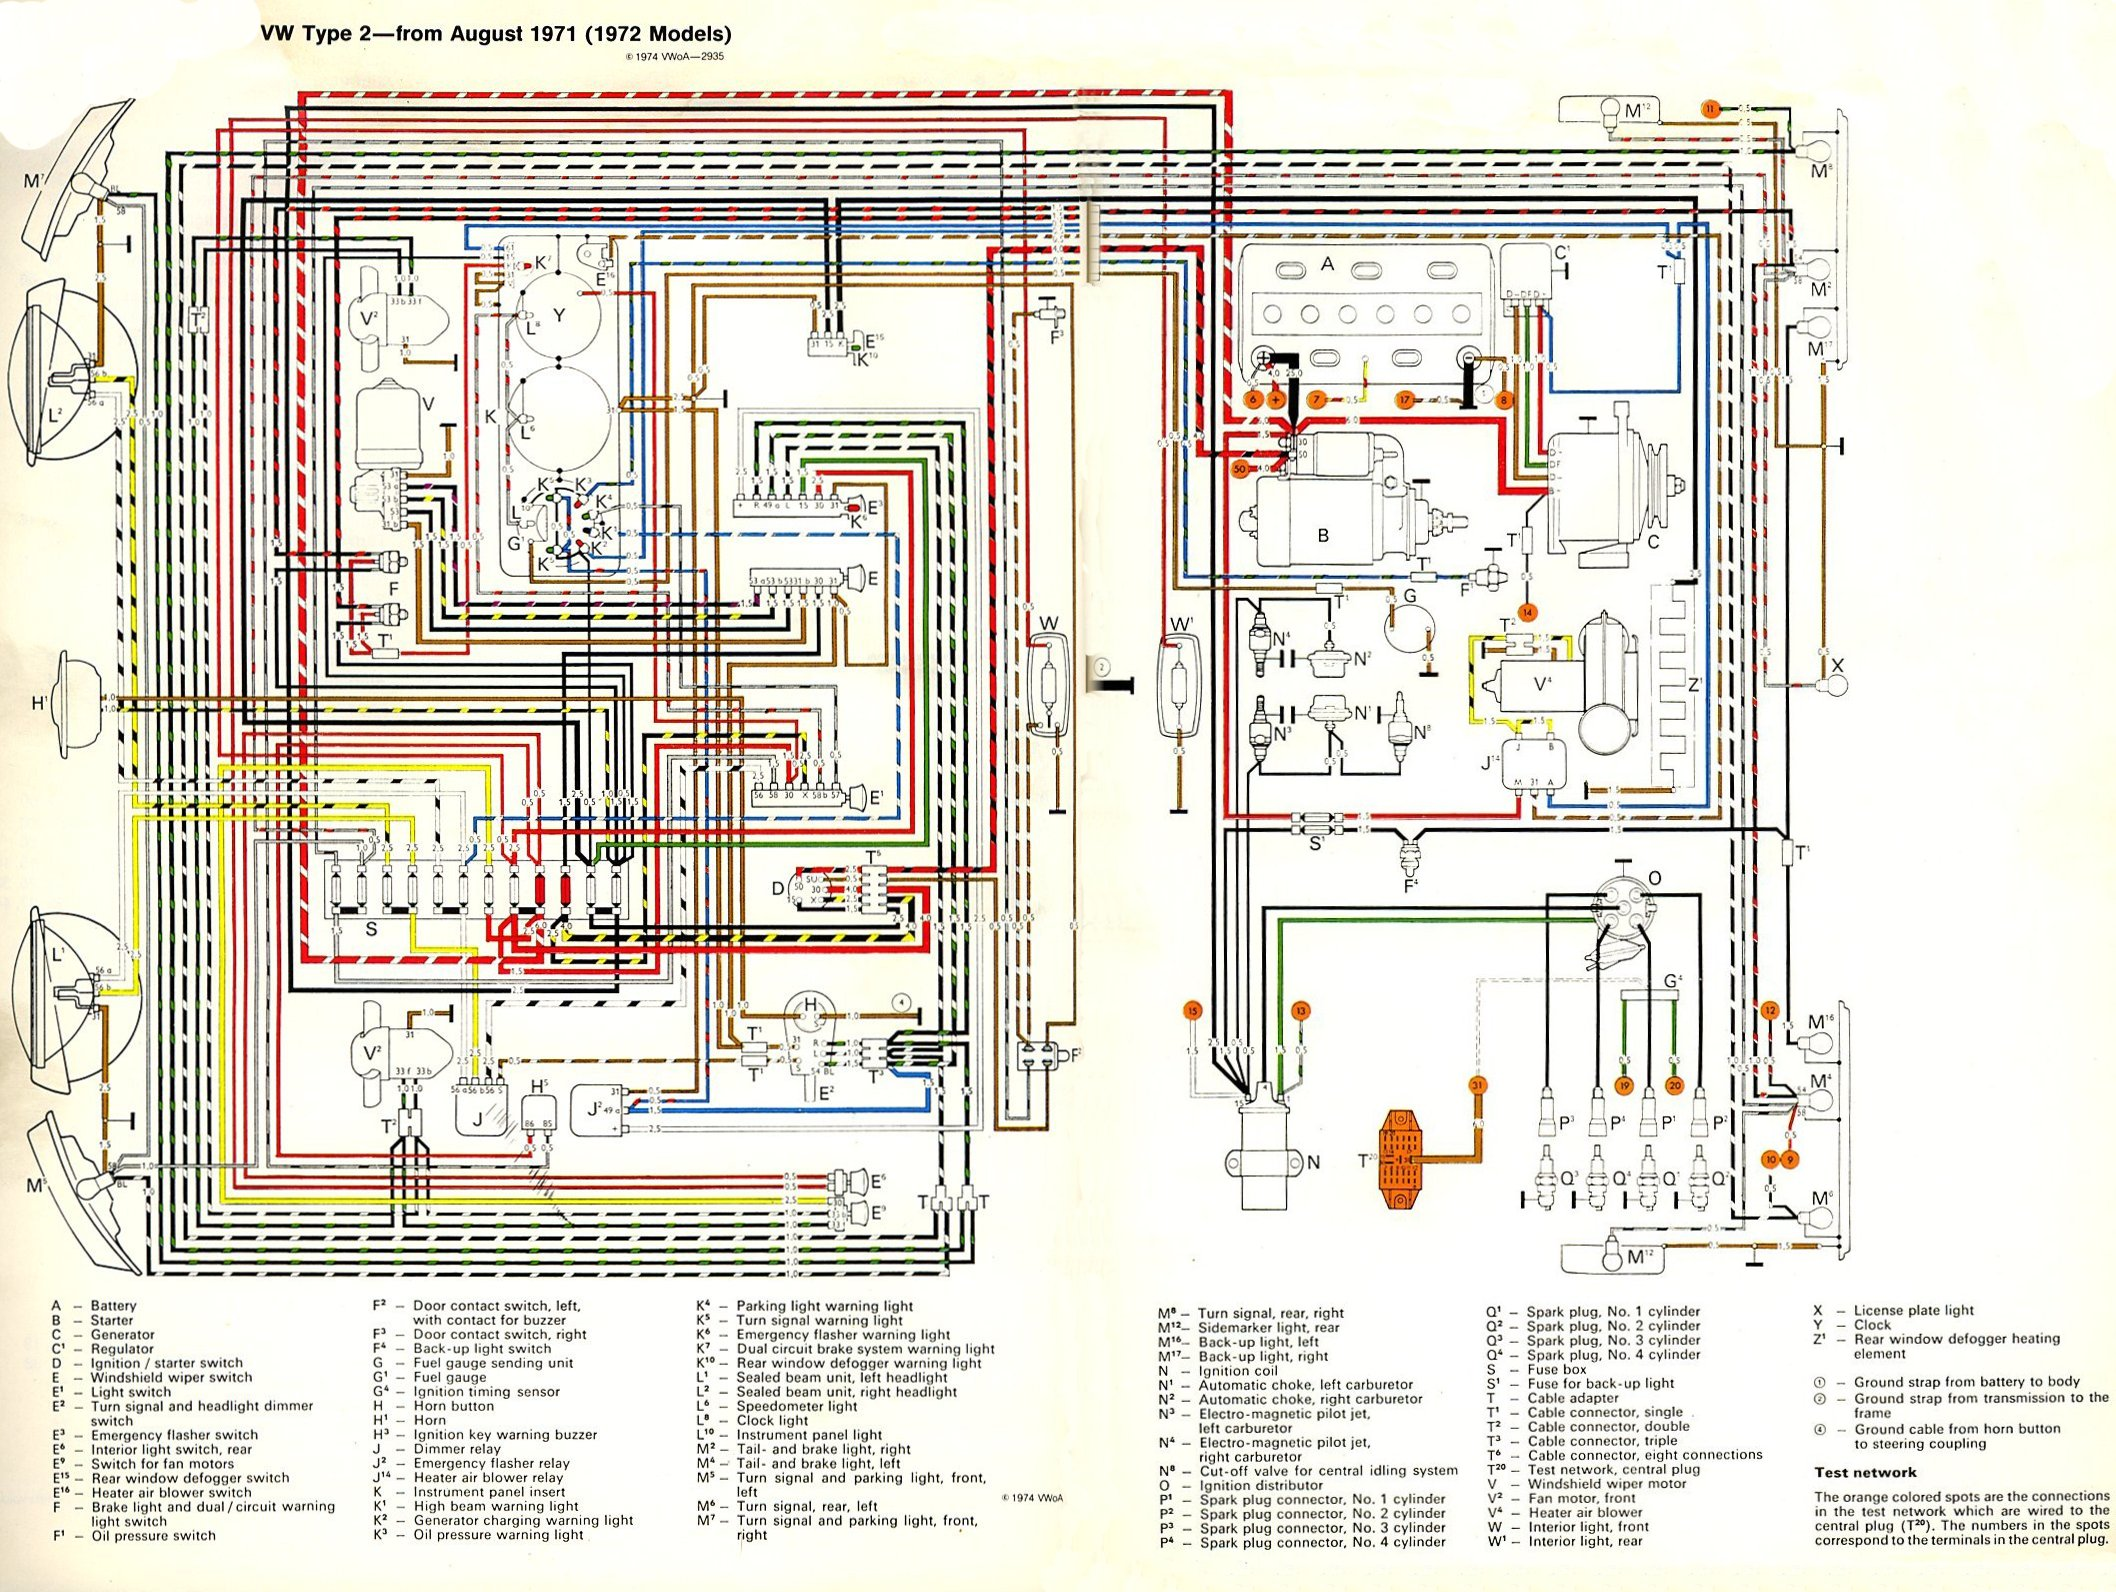 bus_1972_wiring wiring diagram for 1971 vw beetle the wiring diagram  at gsmx.co